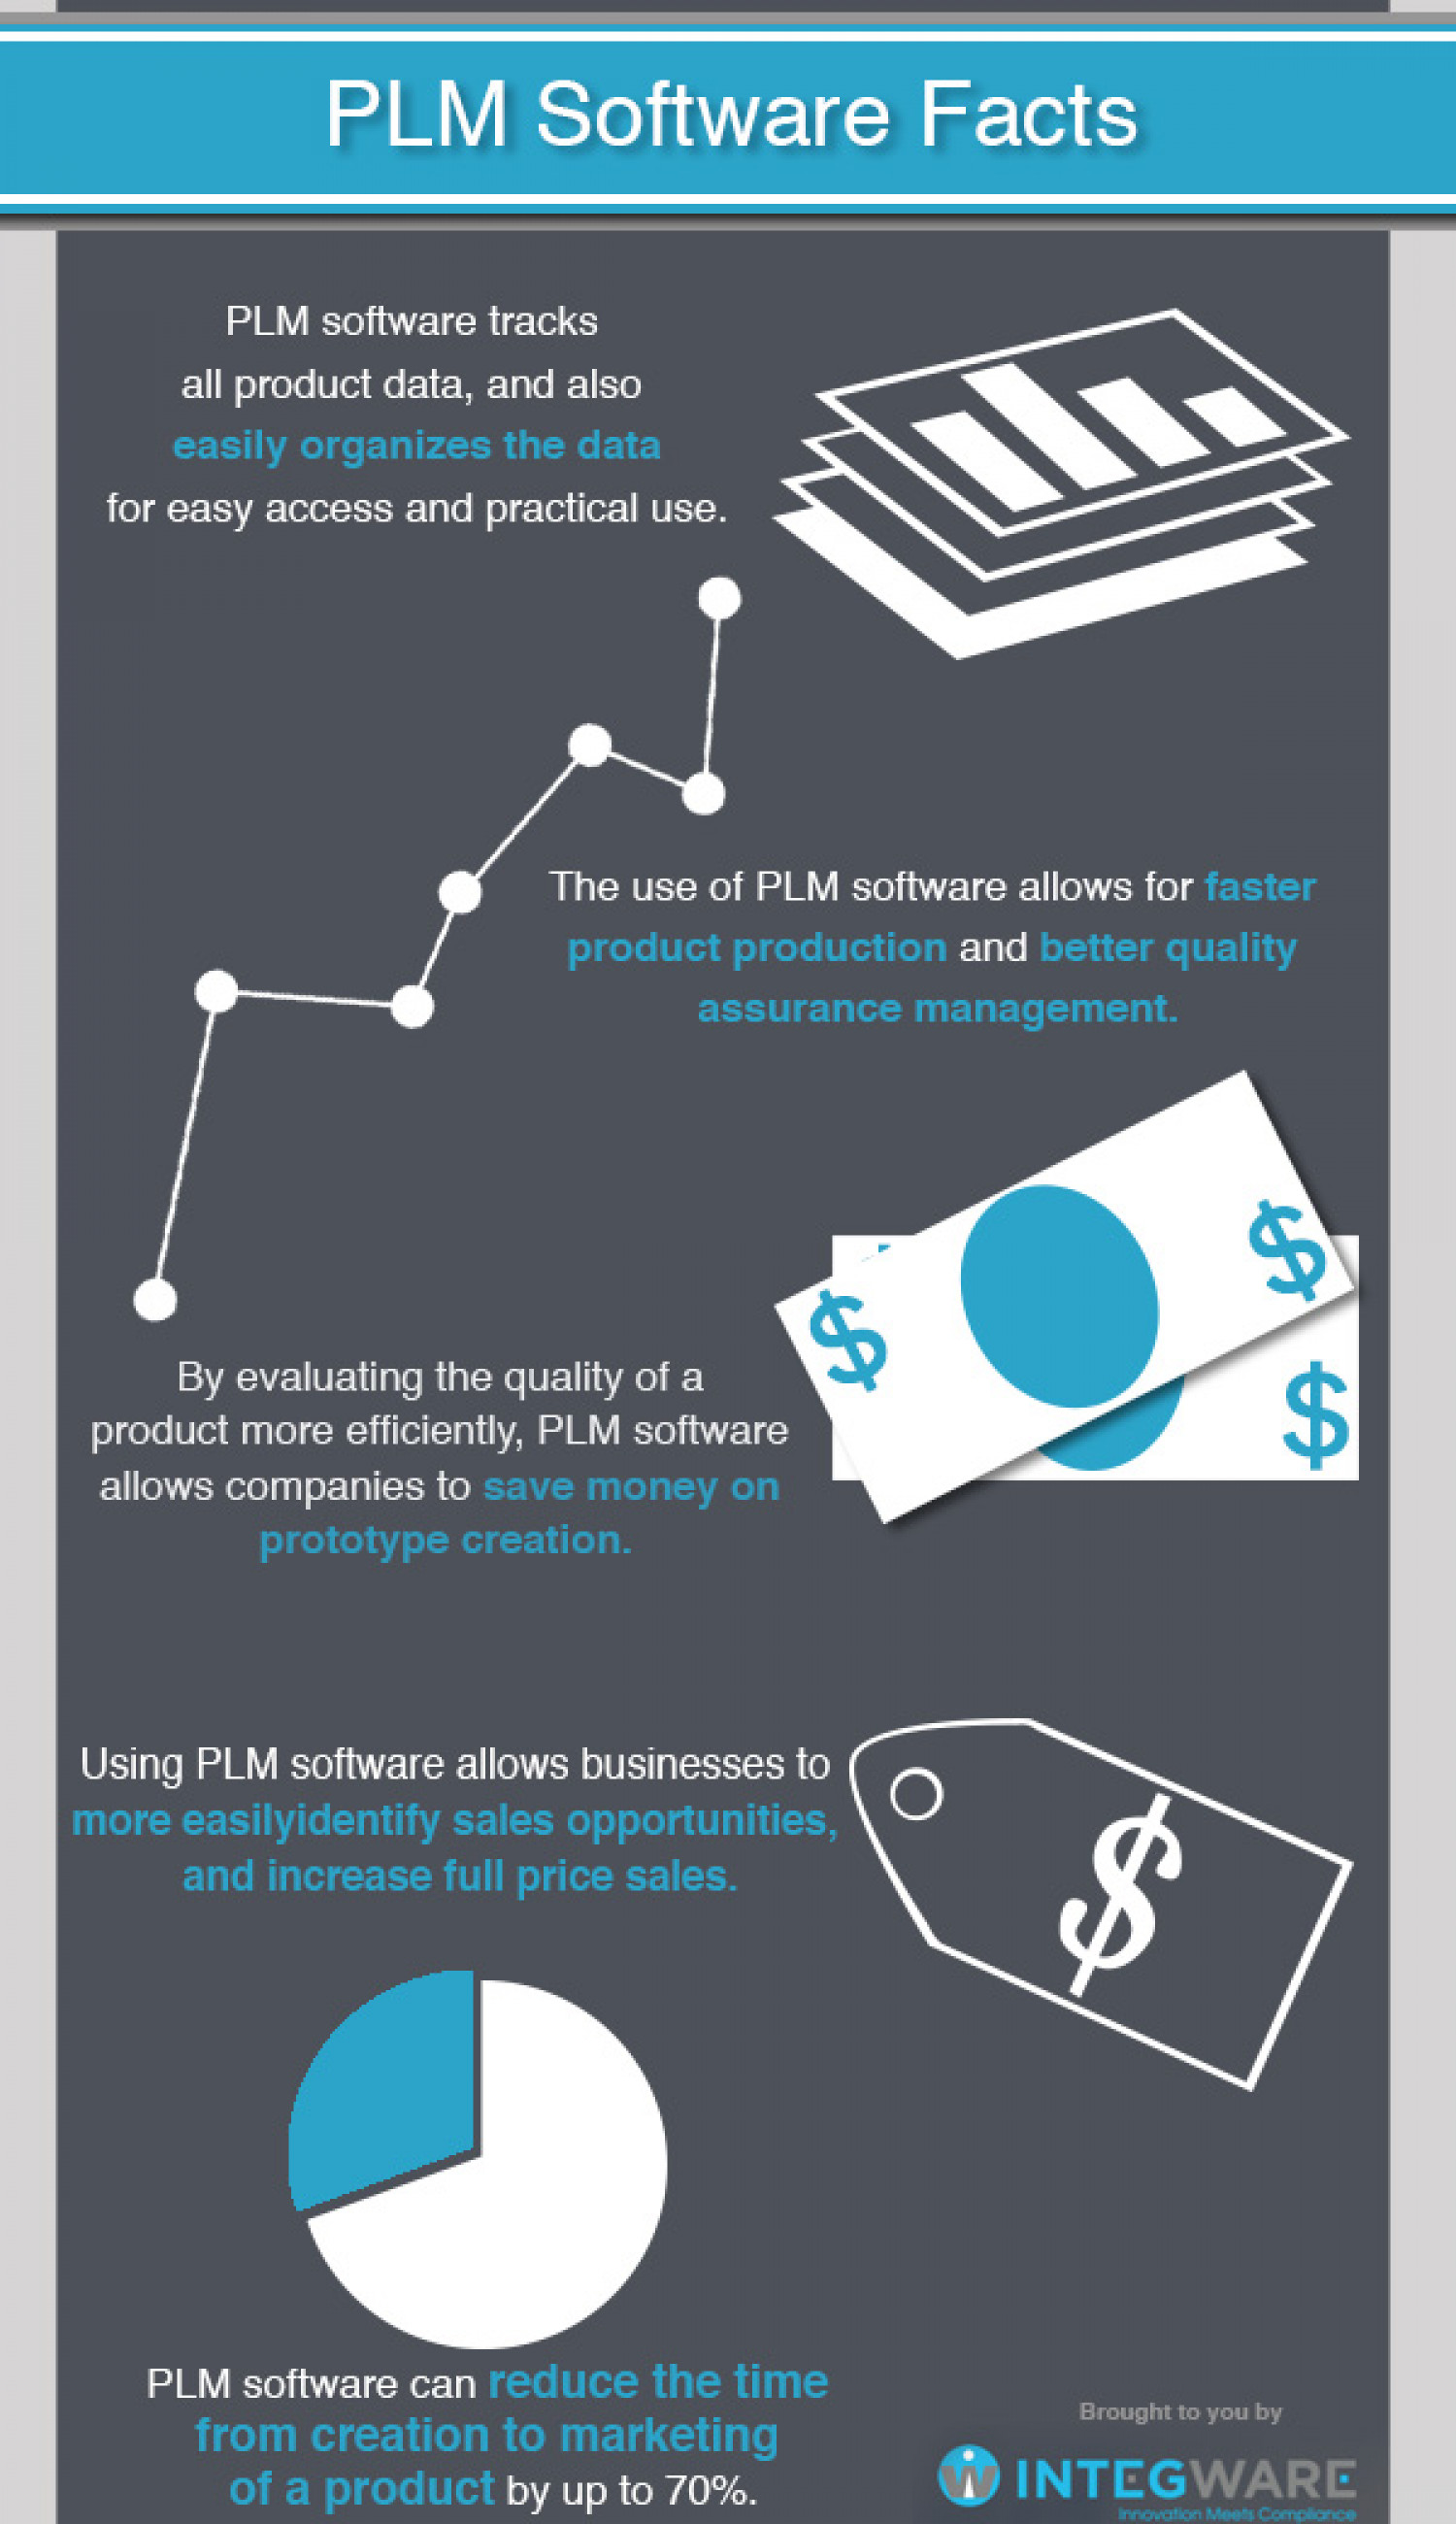 PLM Software Facts Infographic